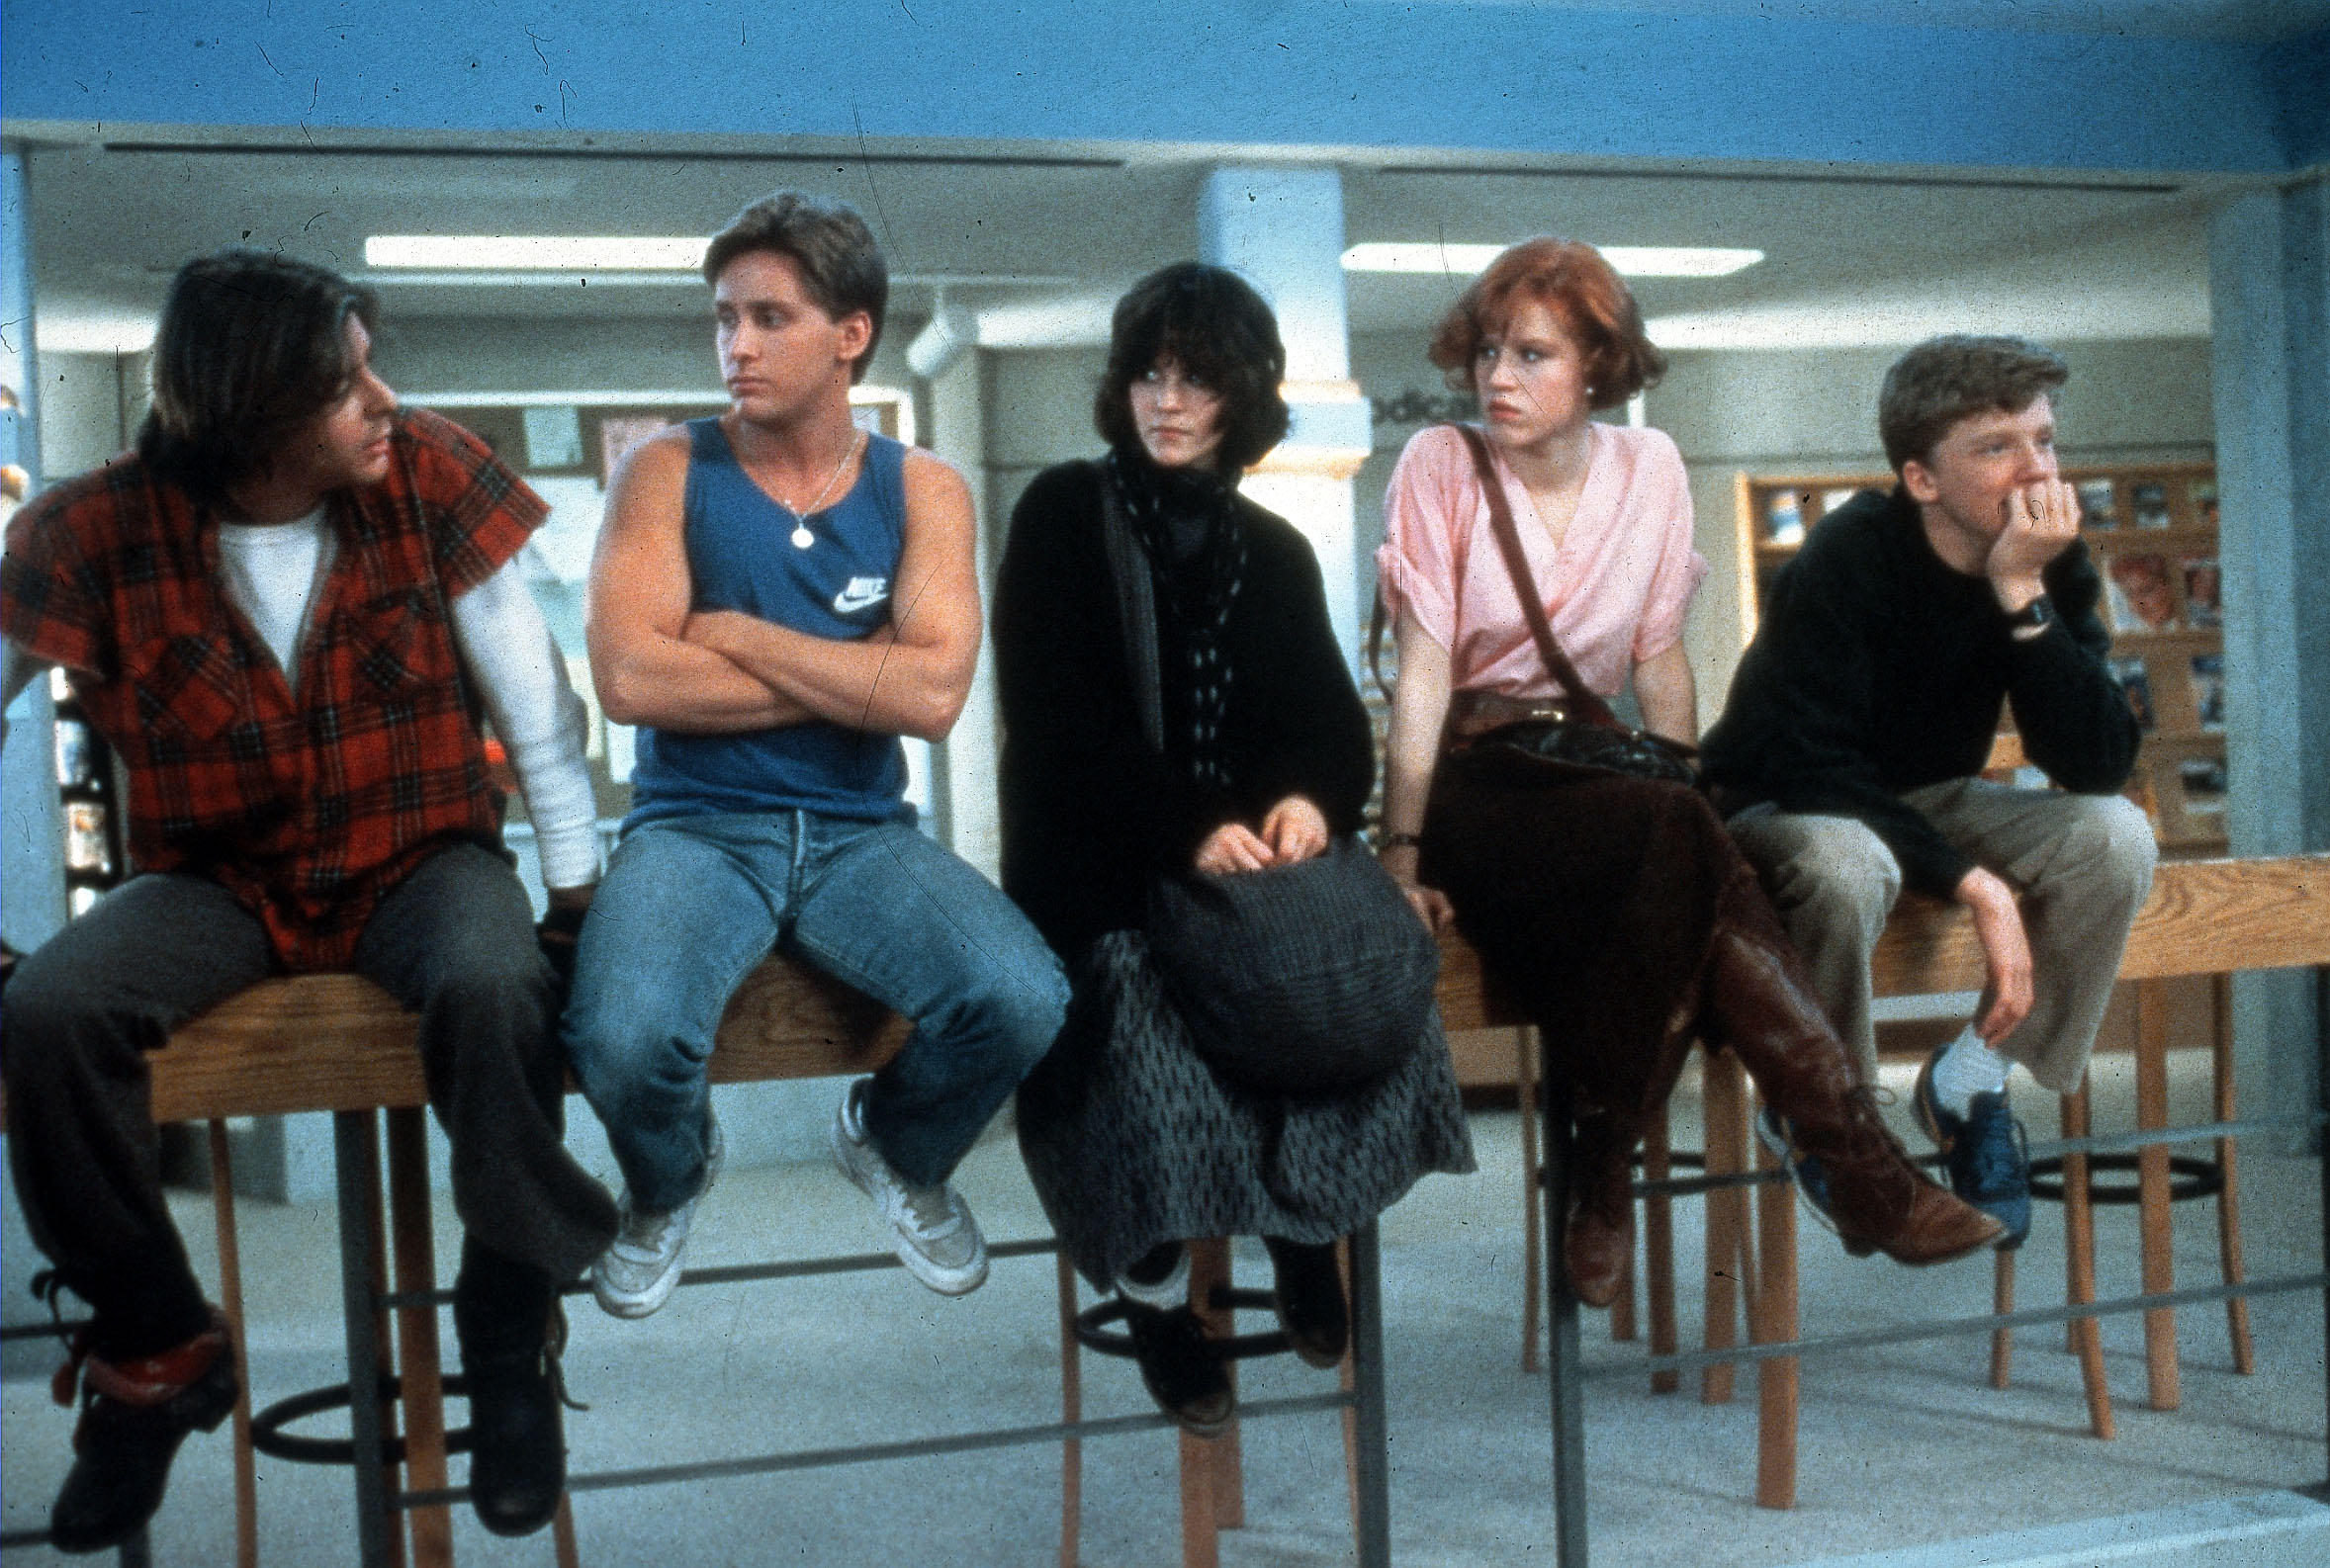 THE BREAKFAST CLUB [US 1985]   JUDD NELSON, EMILIO ESTEVEZ, ALLY SHEEDY, MOLLY RINGWALD, ANTHOINY MICHAEL HALL     Date: 1985